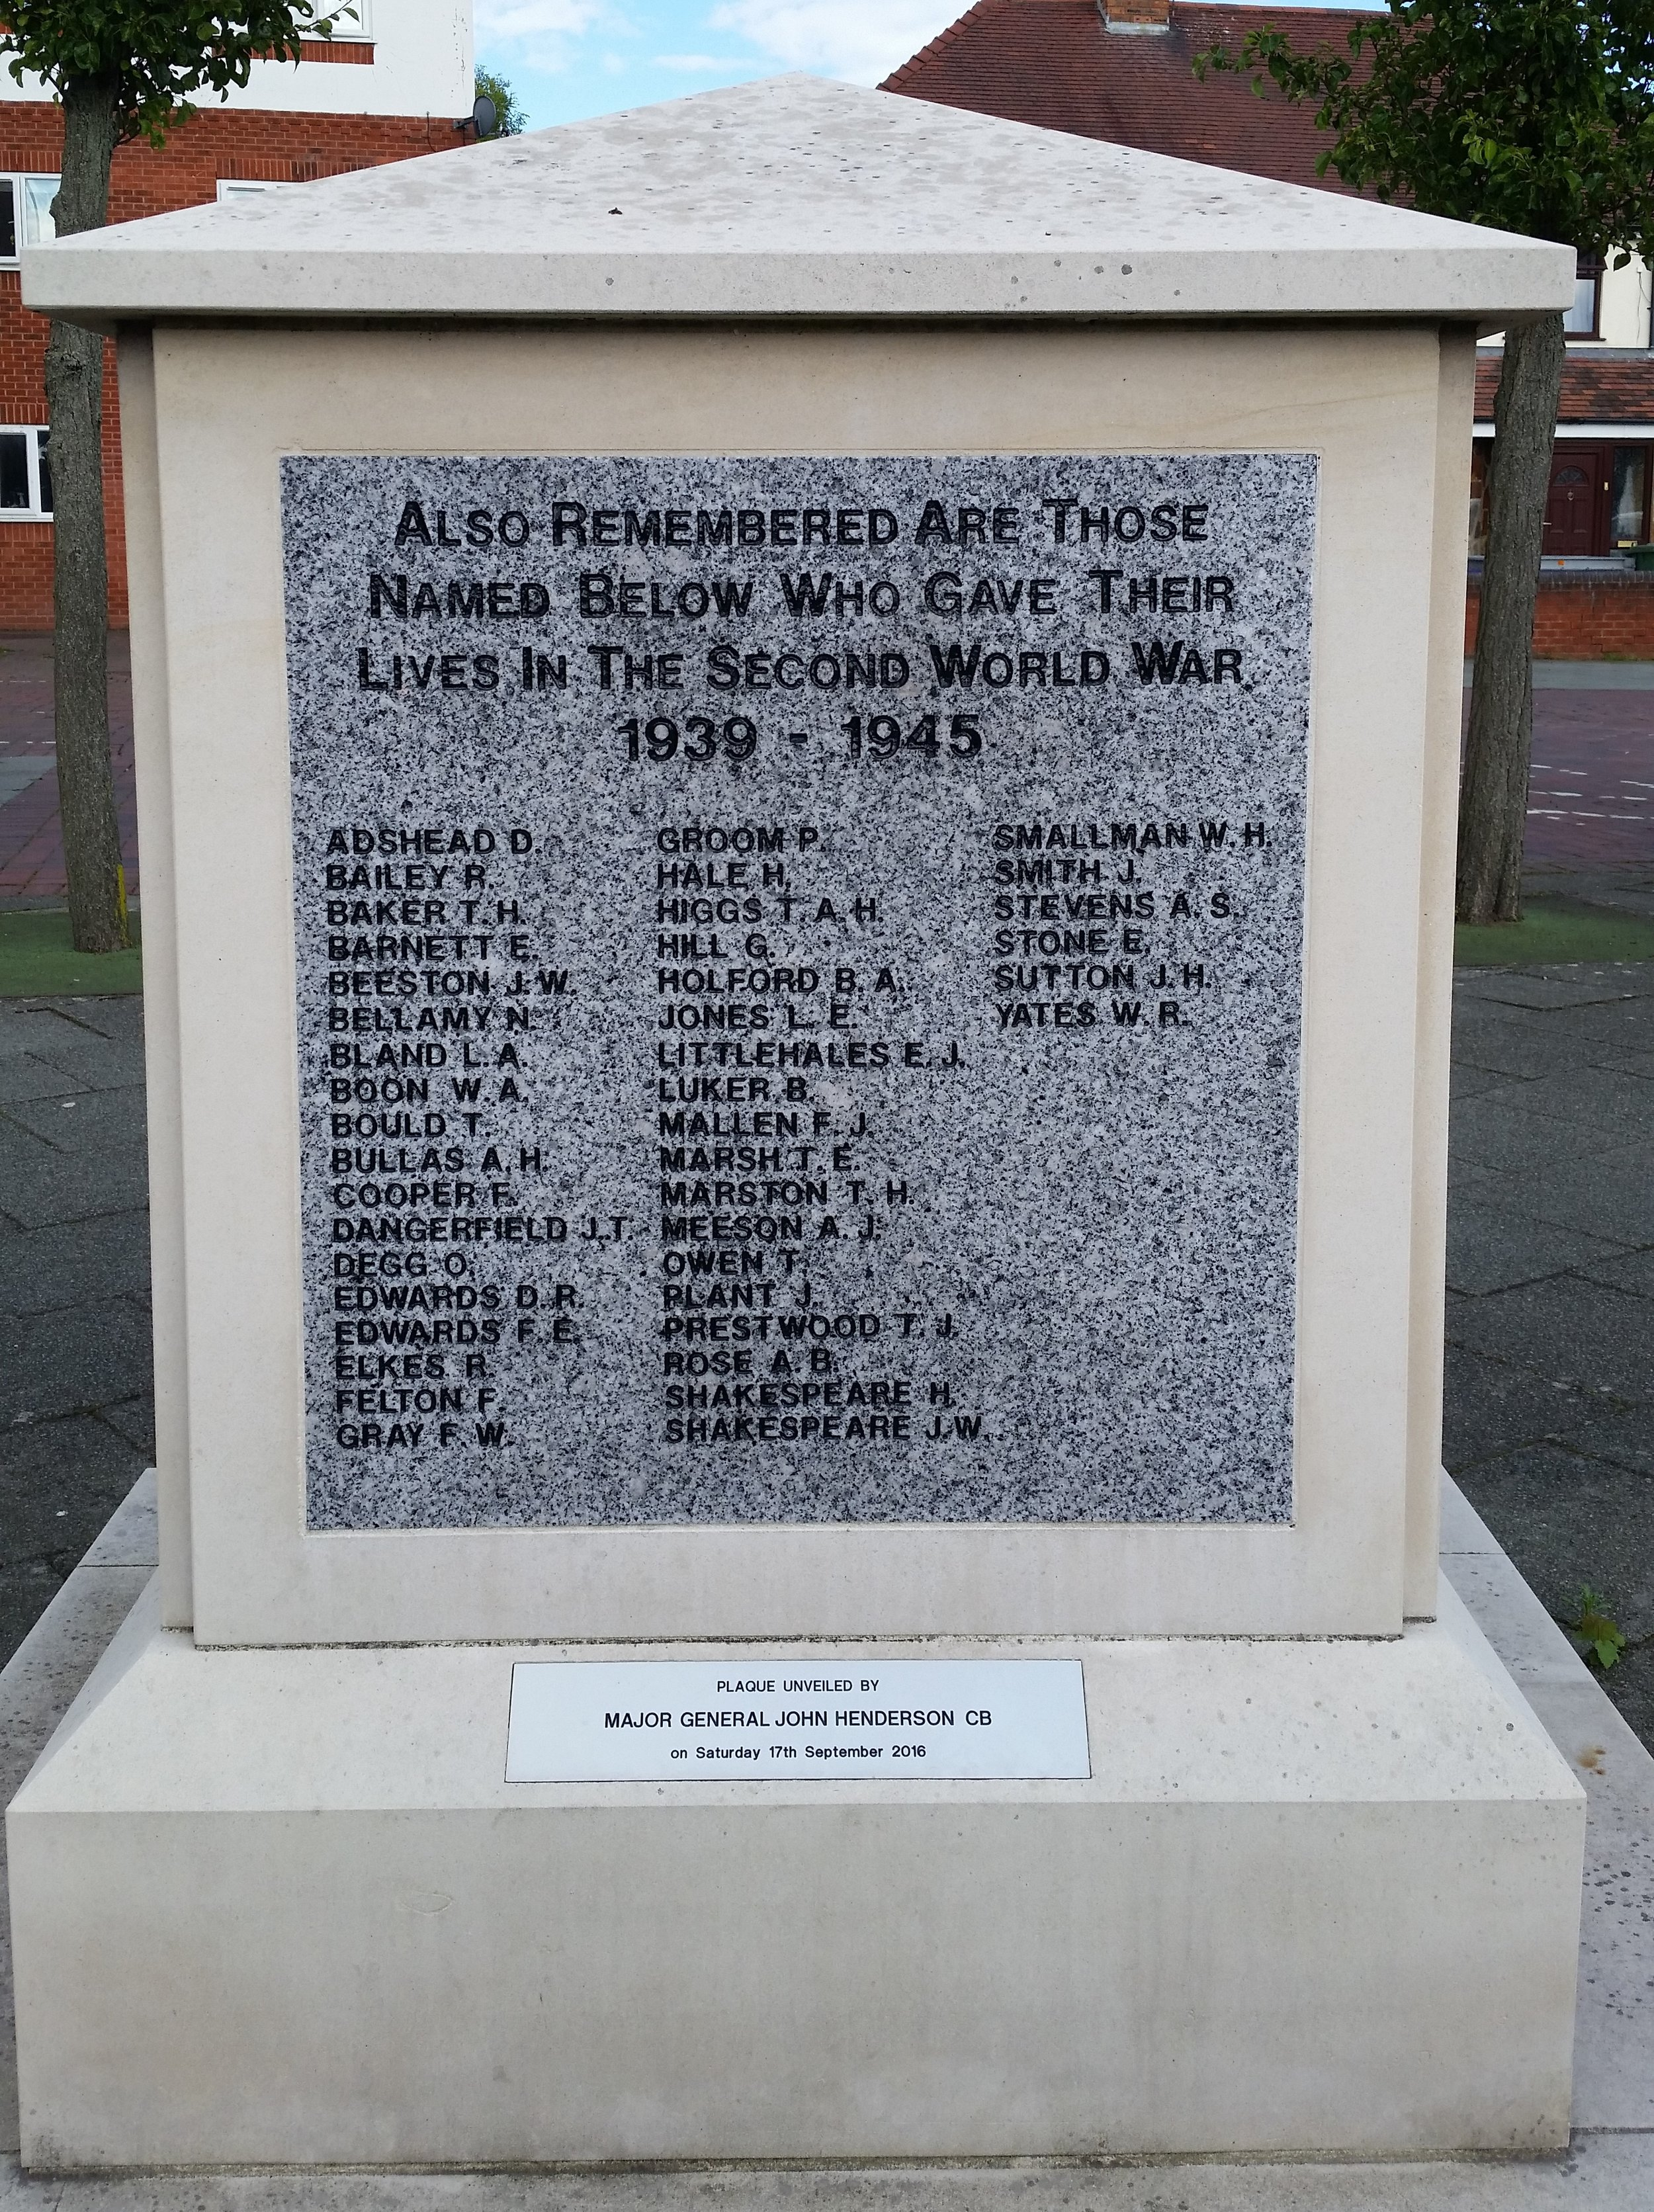 ALSO REMEMBERED ARE THOSE                   NAMED BELOW WHO GAVE THEIR                  LIVES IN THE SECOND WORLD WAR                                      1939 - 1945  ADSHEAD D                 GROOM P               SMALLMAN W H BAILEY R                     HALE H                   SMITH J BARKER T H                HIGGS T A H          STEVENS A S BARNETT E                  HILL G                   STONE E BEESTON J W               HOLFORD B A       SUTTON J M BELLAMY N                 JONES L E               YATES W R BLAND L A                   LITTLEHALES J E BOON W A                    LUKER B BOULD T                      MALLEN F J BULLAS A H                 MARSH T E COOPER F                    MARSTON T H DANGERFIELD J T      MEESON A J DEGG O                        OWEN T EDWARDS D R             PLANT J EDWARDS F E              PRESTWOOD T J ELKES R                       ROSE A B FELTON F                    SHAKESPEARE H GREY F W                     SHAKESPEARE J W